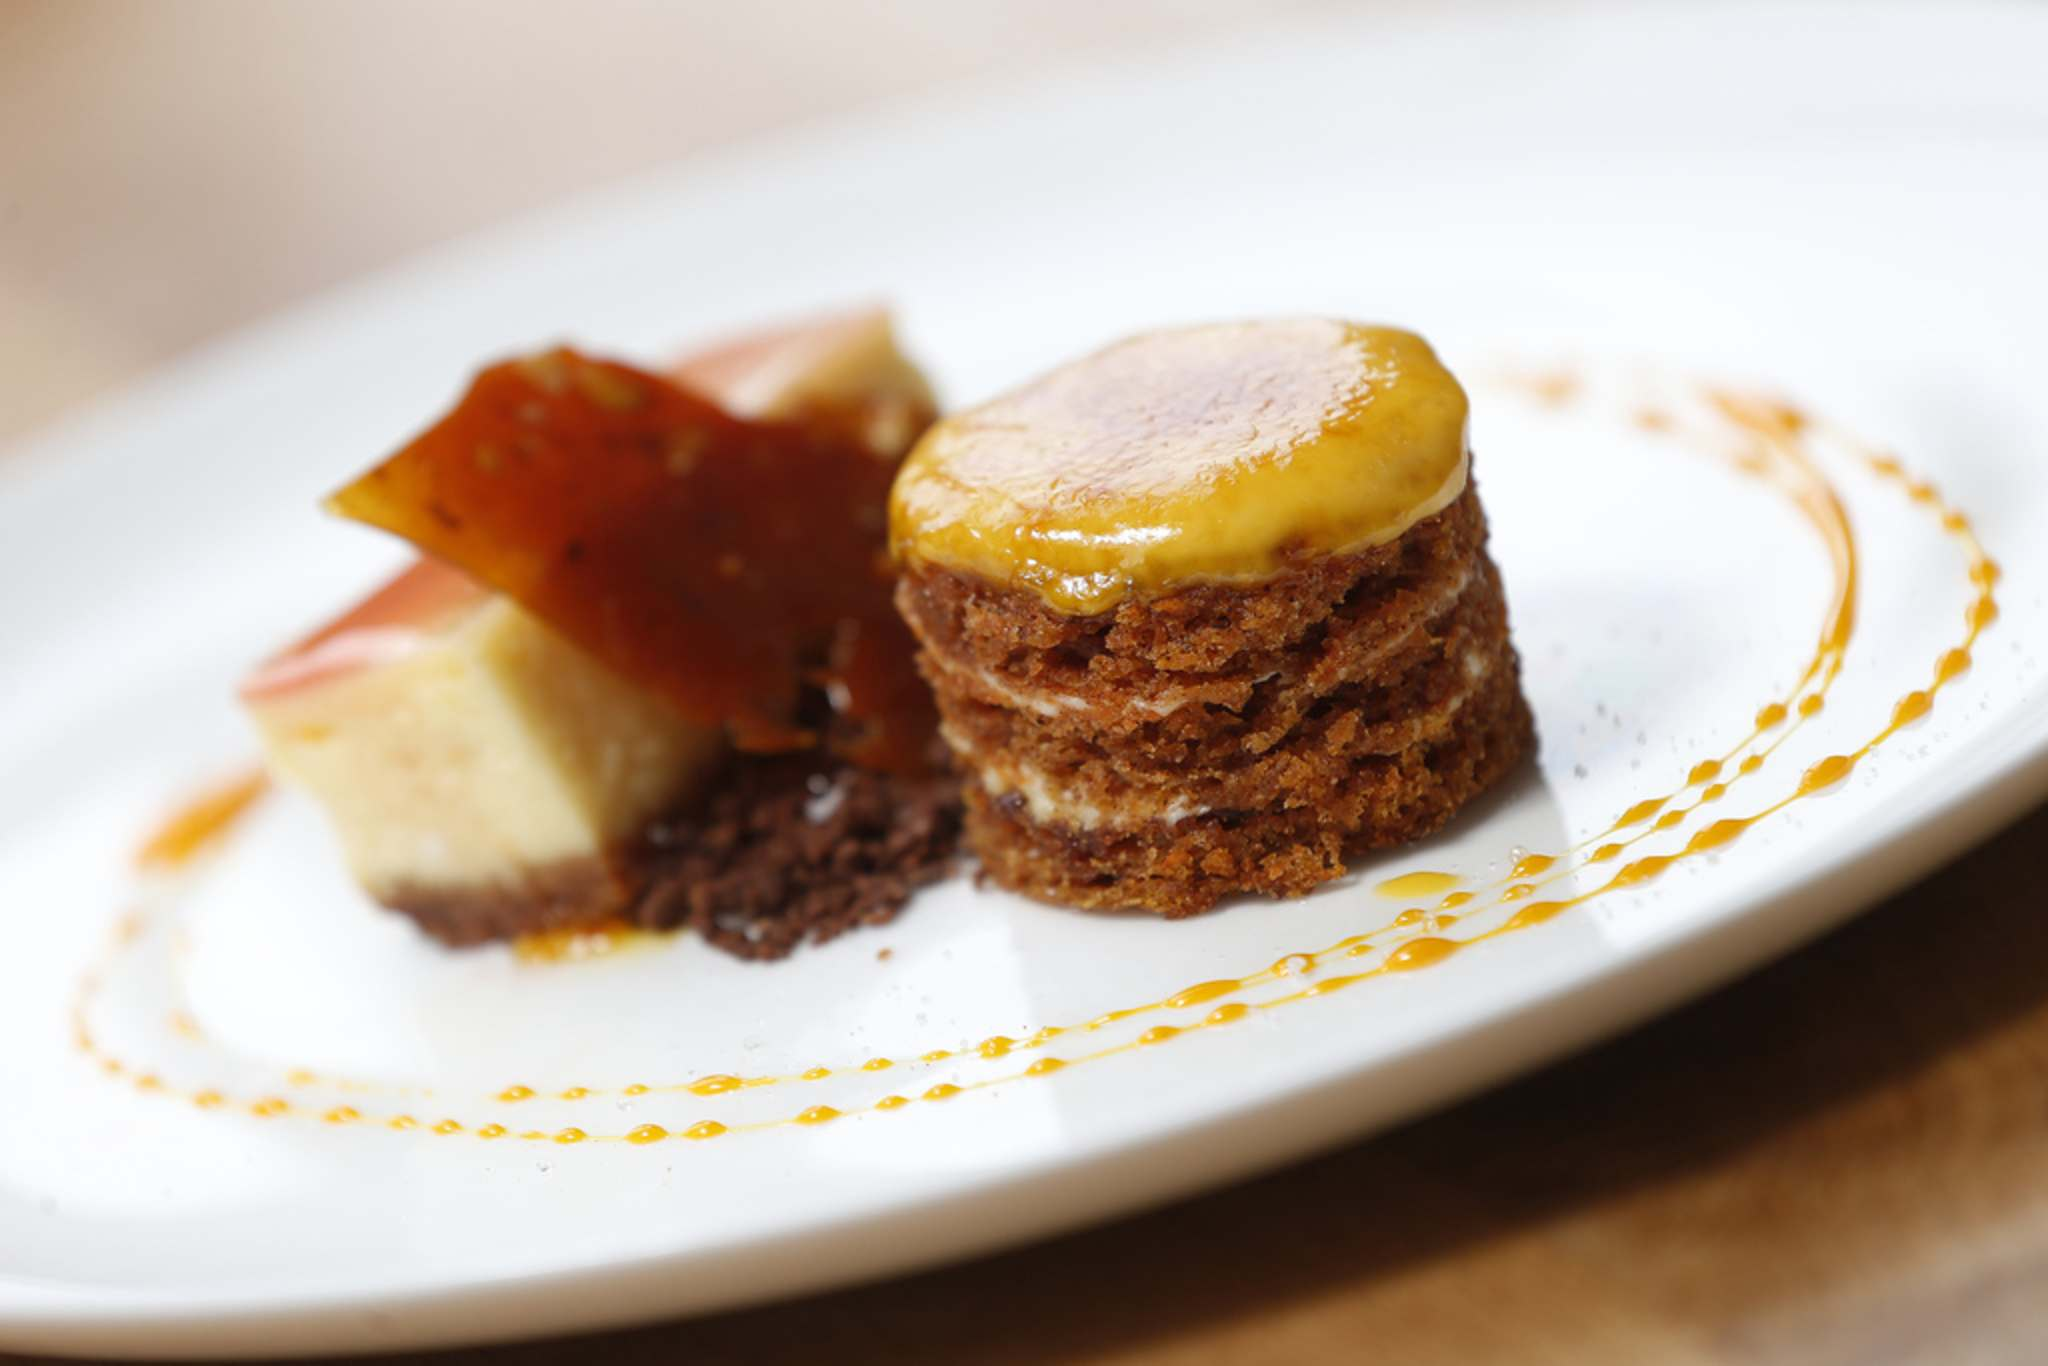 JOHN WOODS / WINNIPEG FREE PRESS</p><p>Carrot Genoise with praline, cheesecake, chocolate soil at The Oxbow.</p>